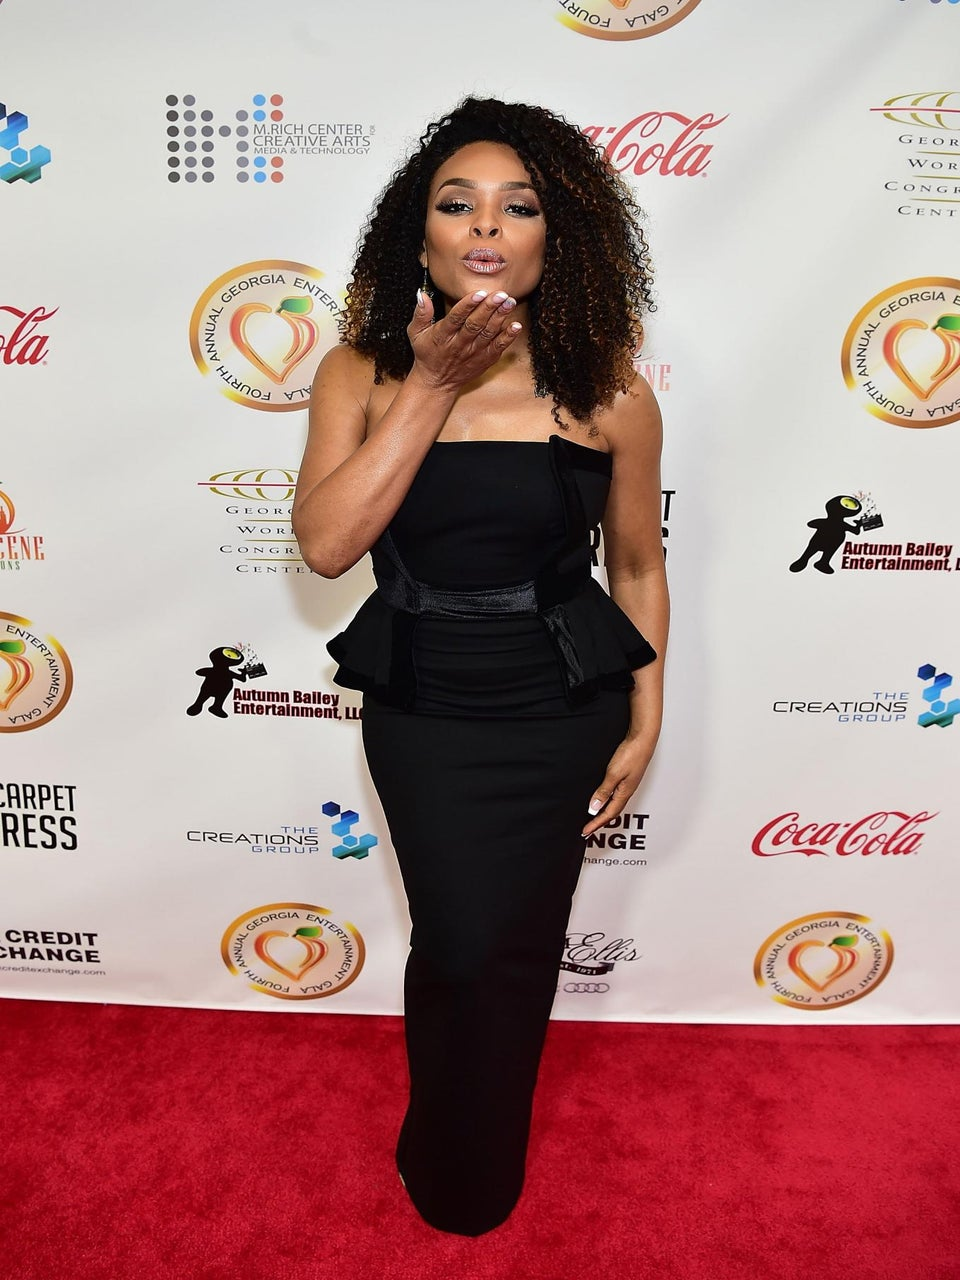 'Real Housewives Of Atlanta'Star Demetria McKinney Steps Out With New Man